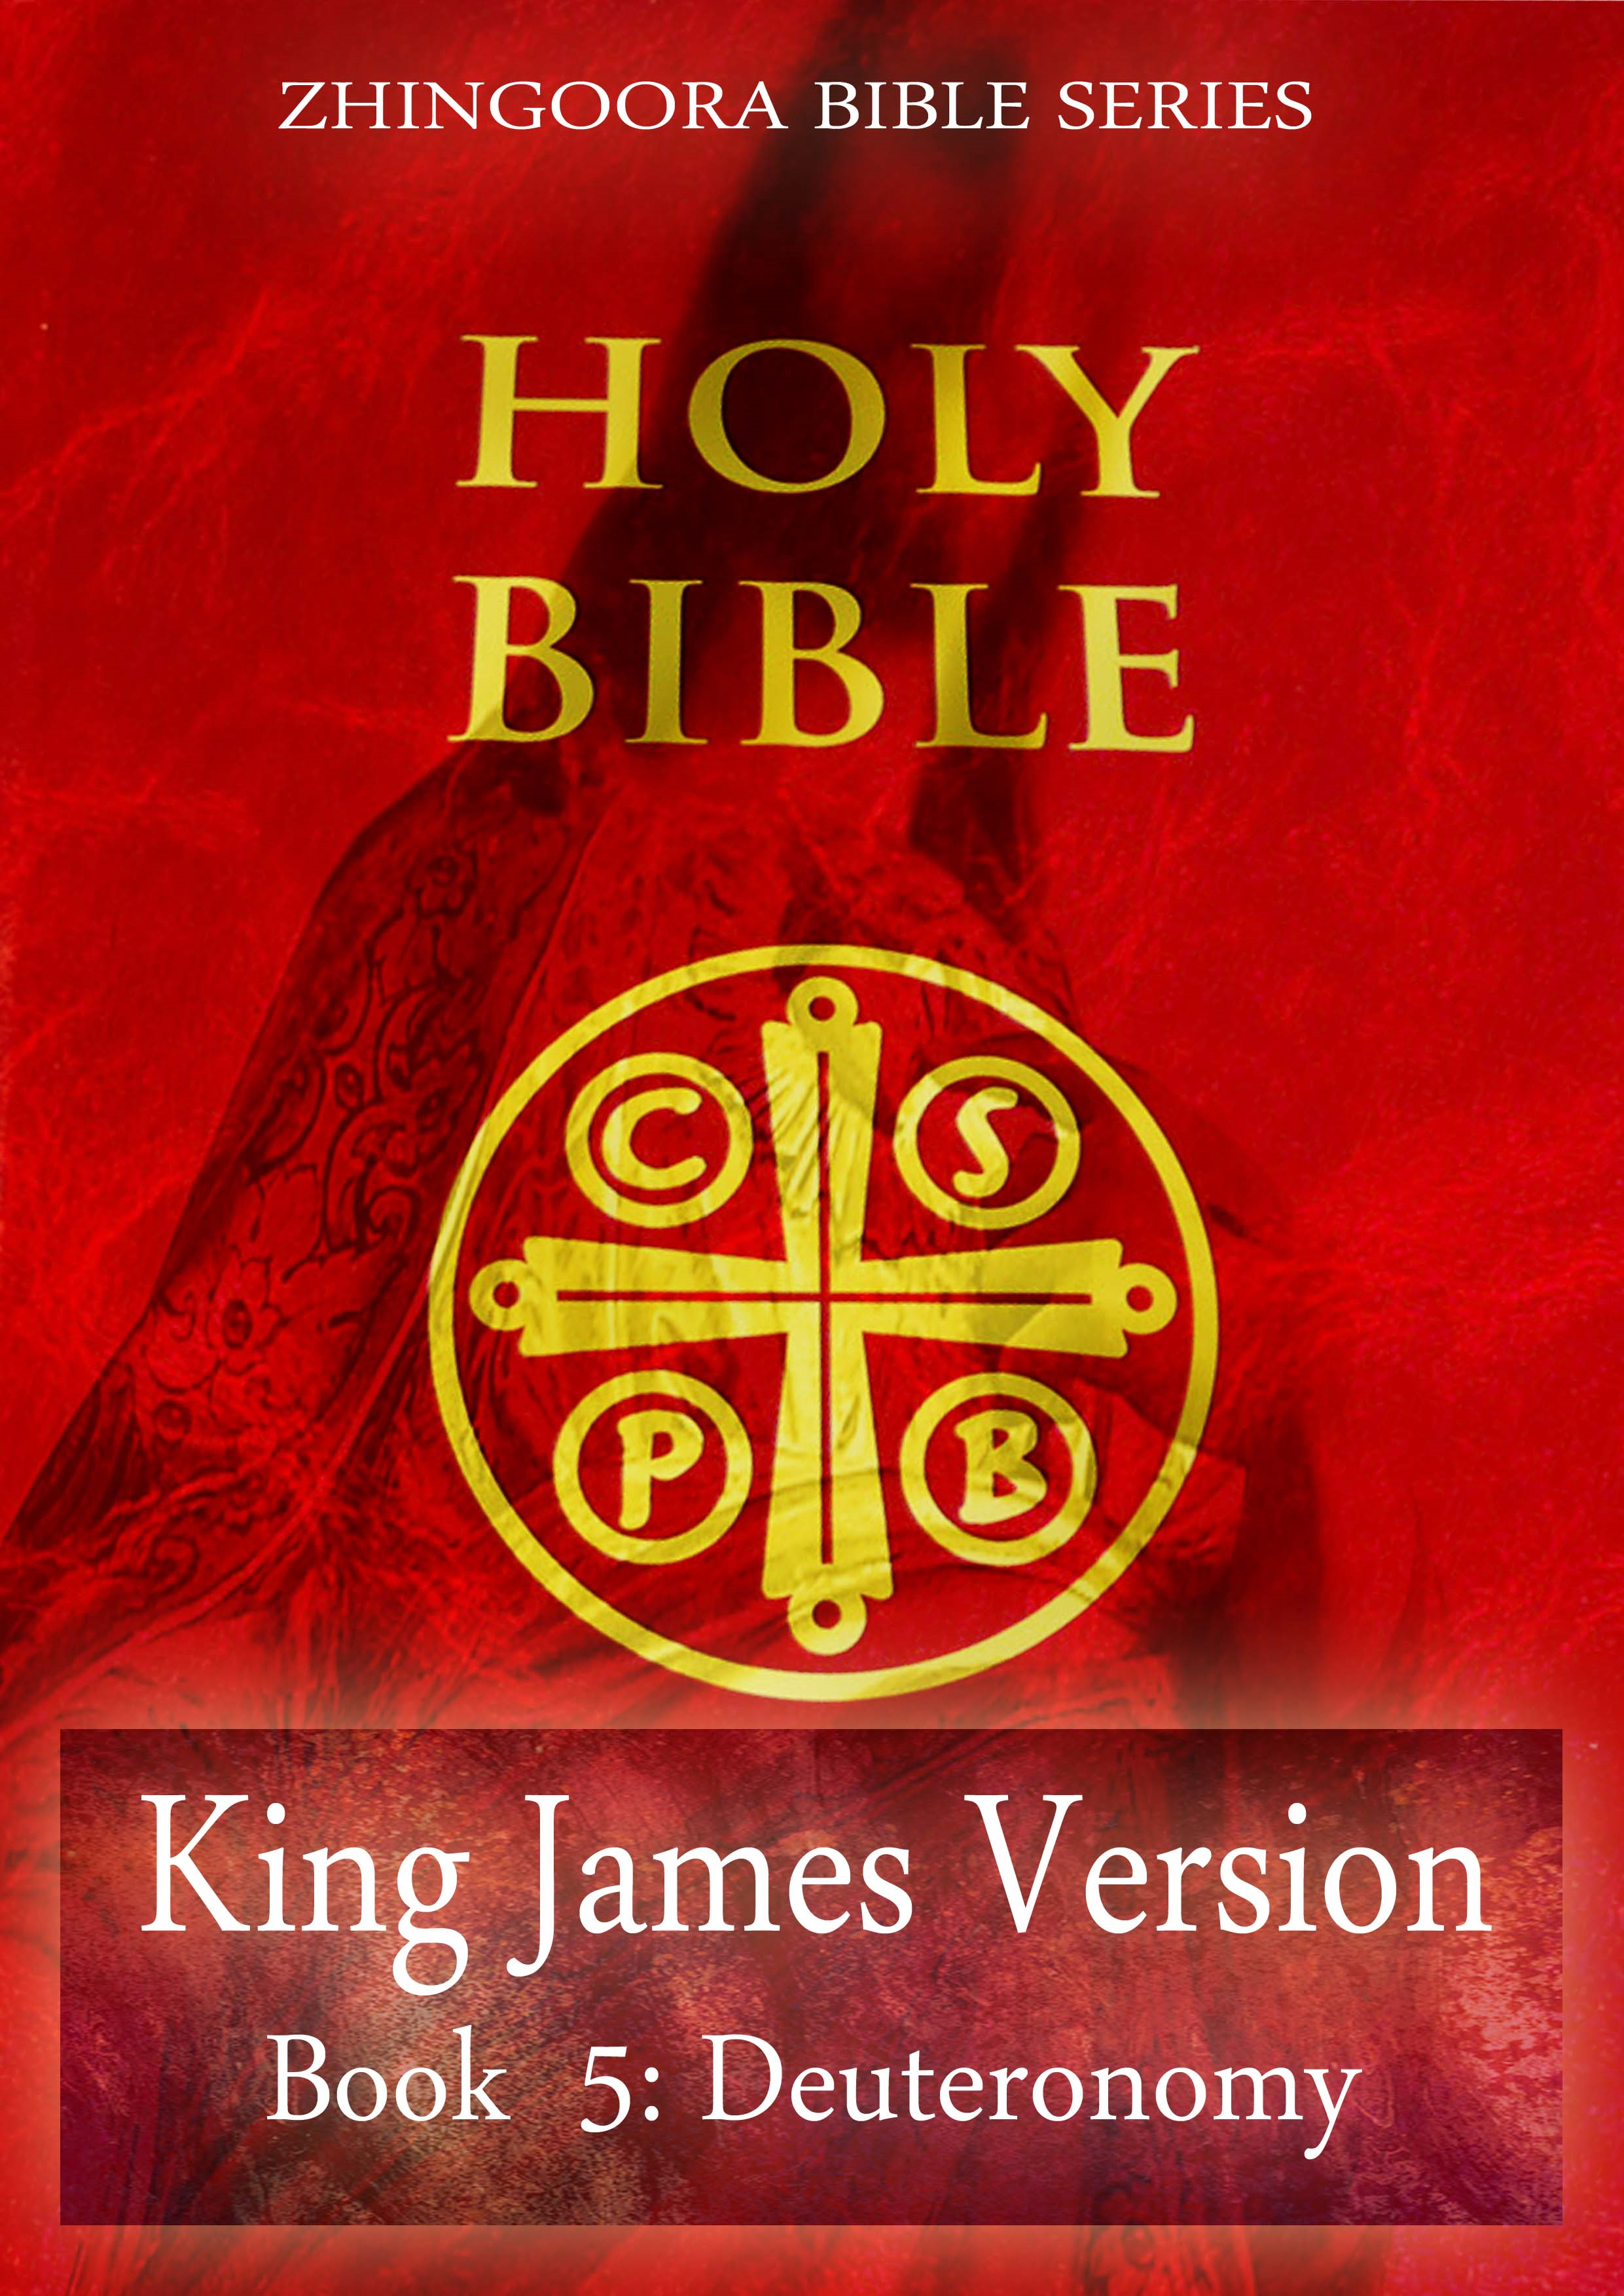 Holy Bible, King James Version, Book 5: Deuteronomy